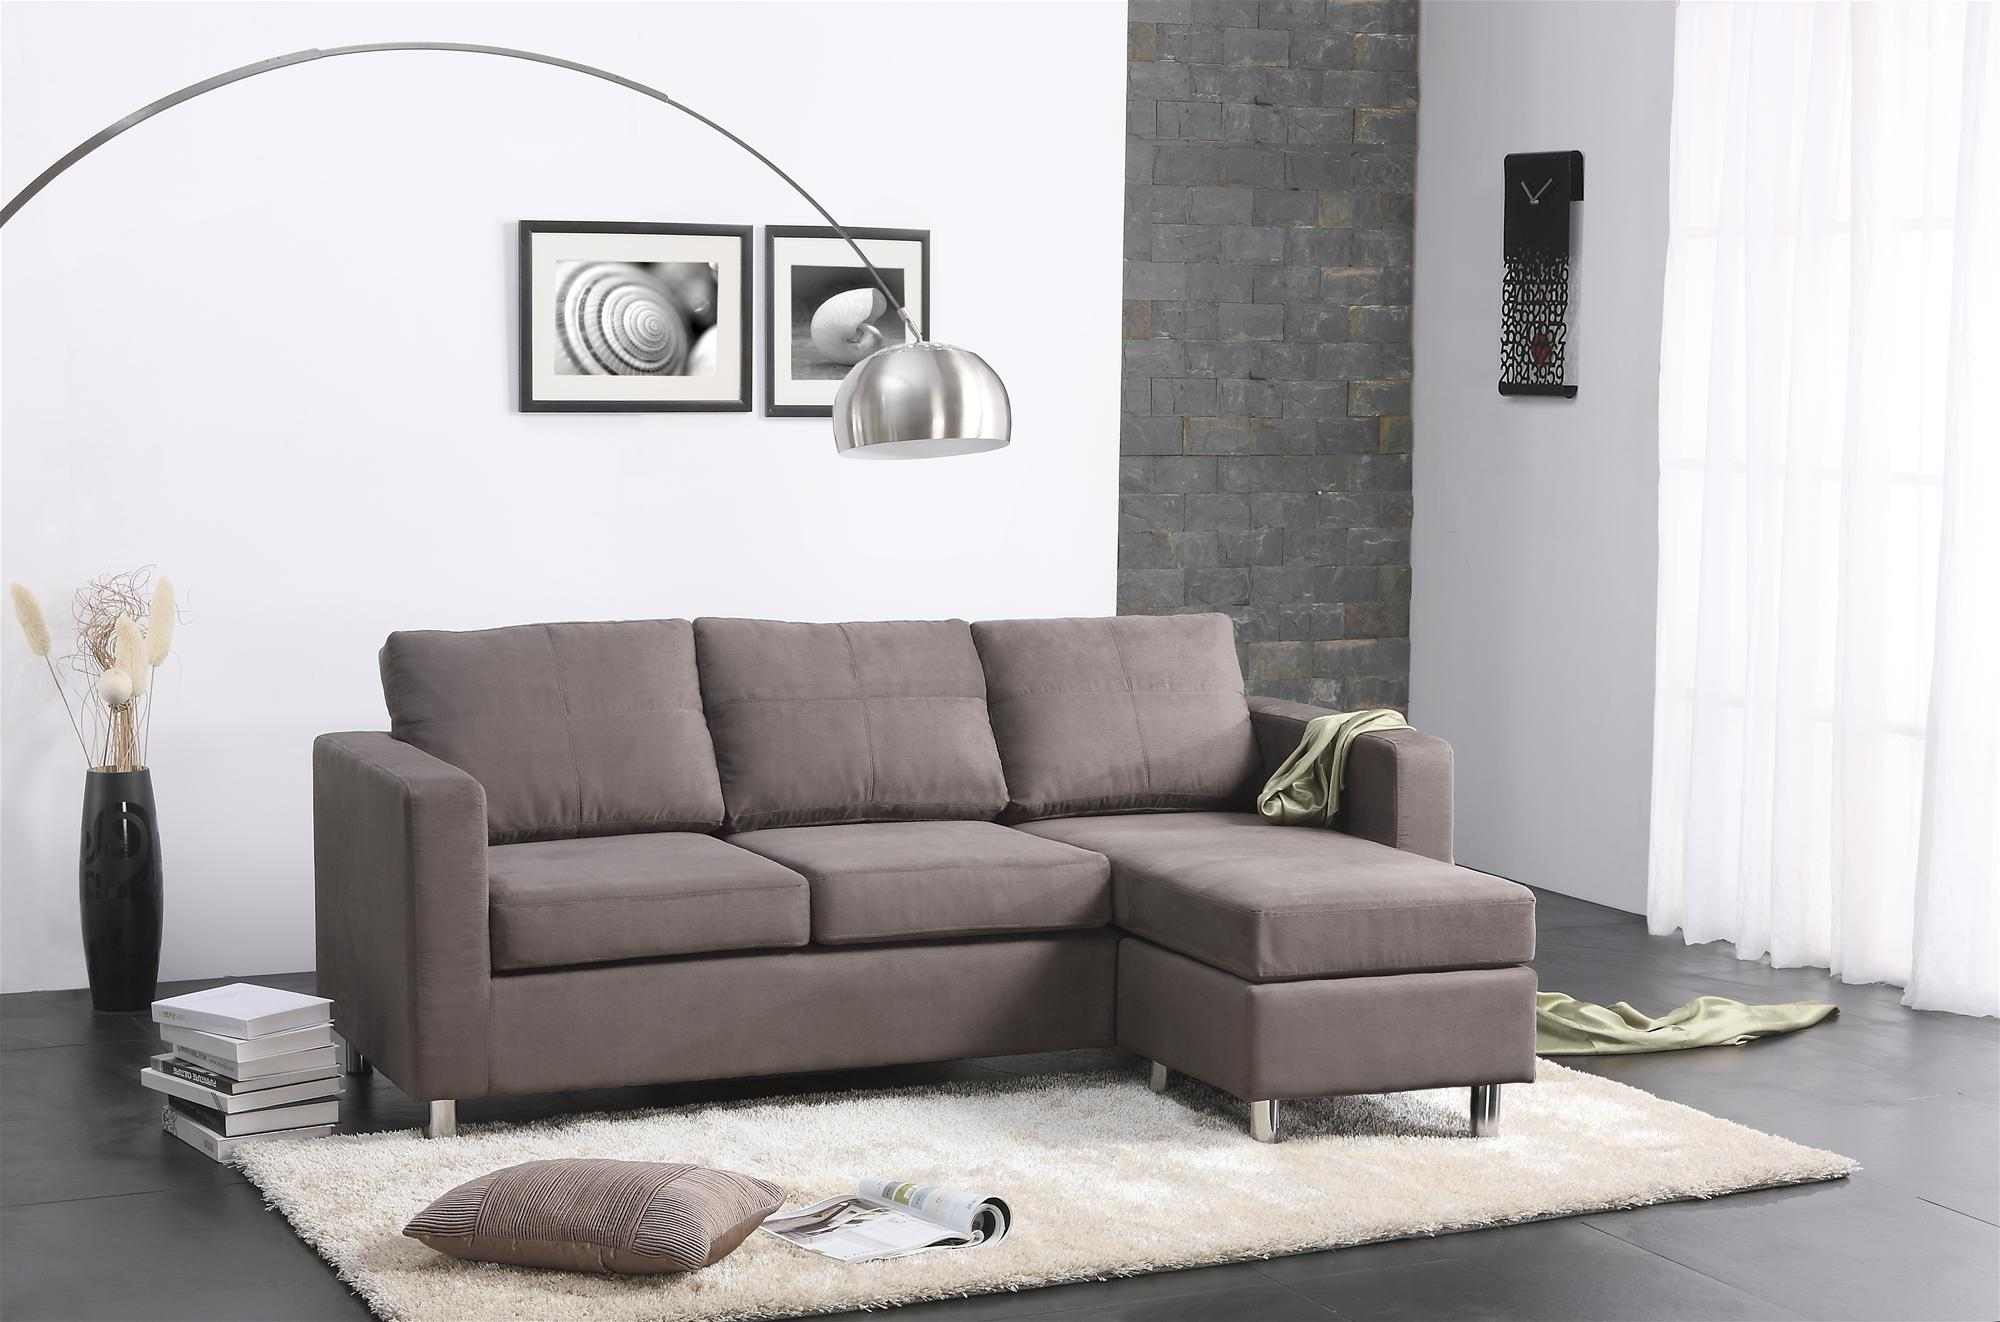 Cool Modern Lamp Designers in Living Room Decoration